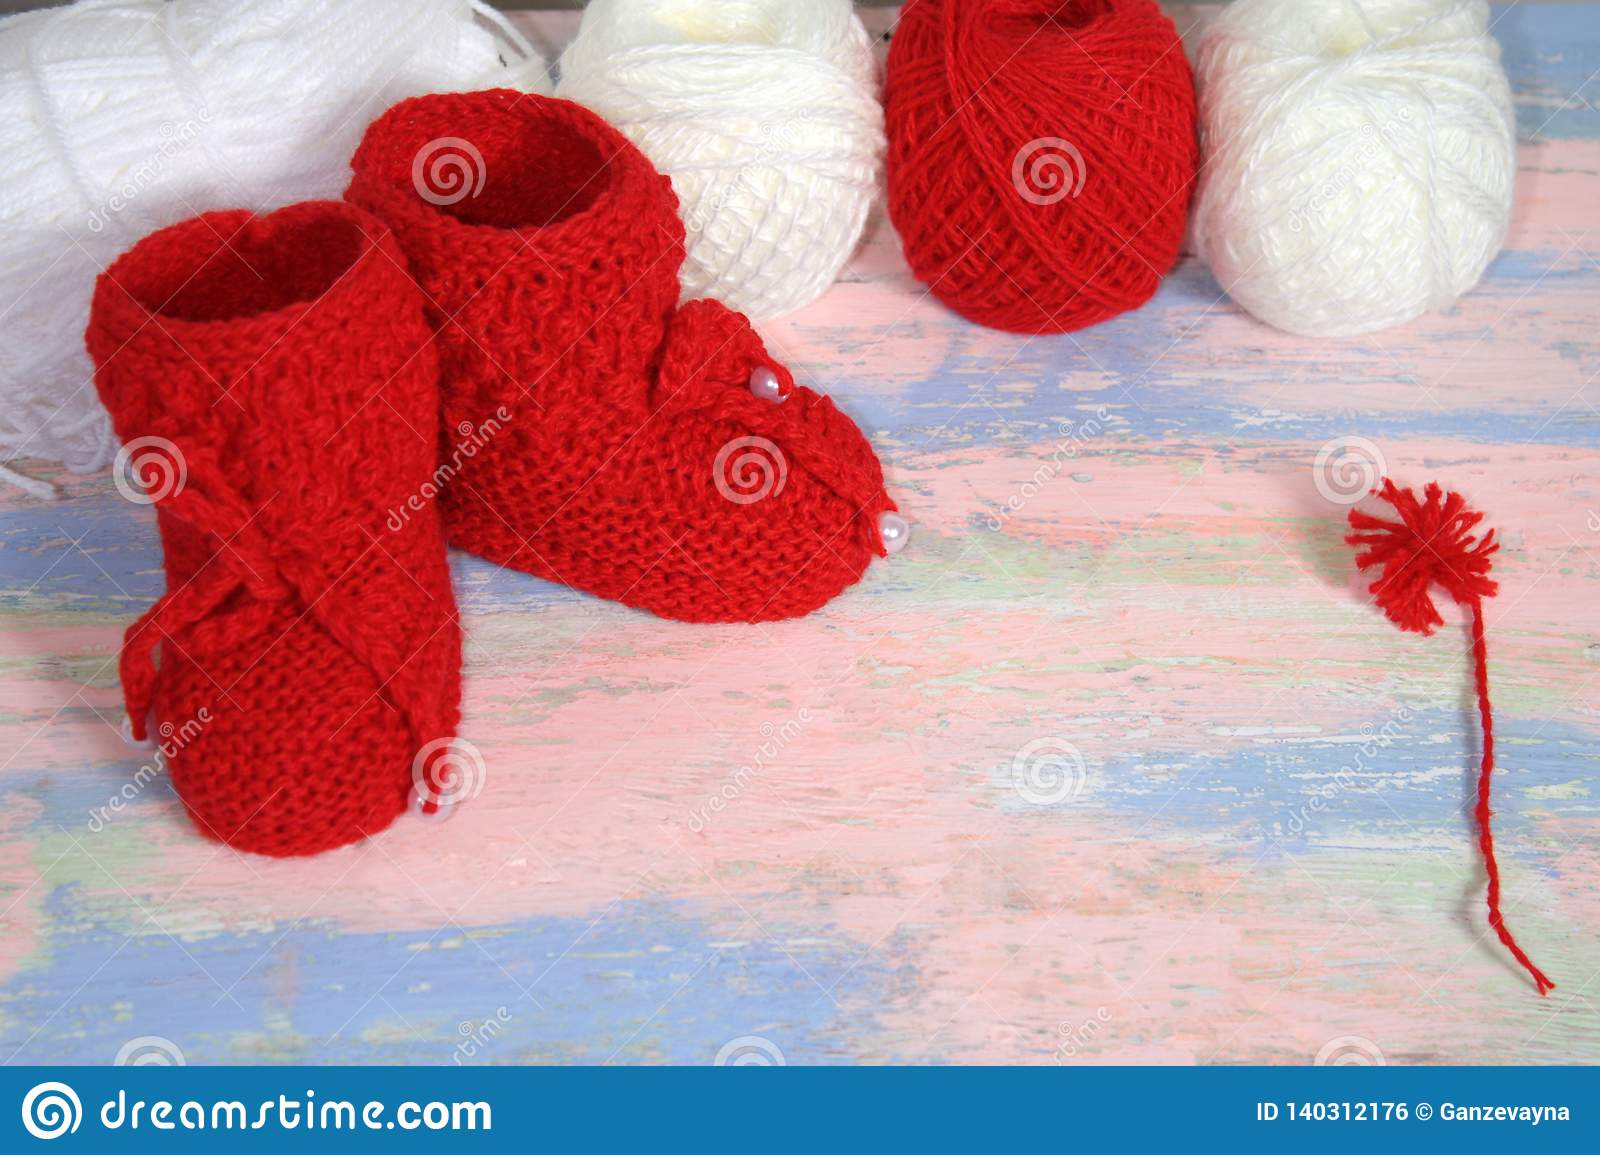 Red knitted baby booties, a red and white balls of wool yarn for knitting and a red pompon of yarn on a pink - blue background